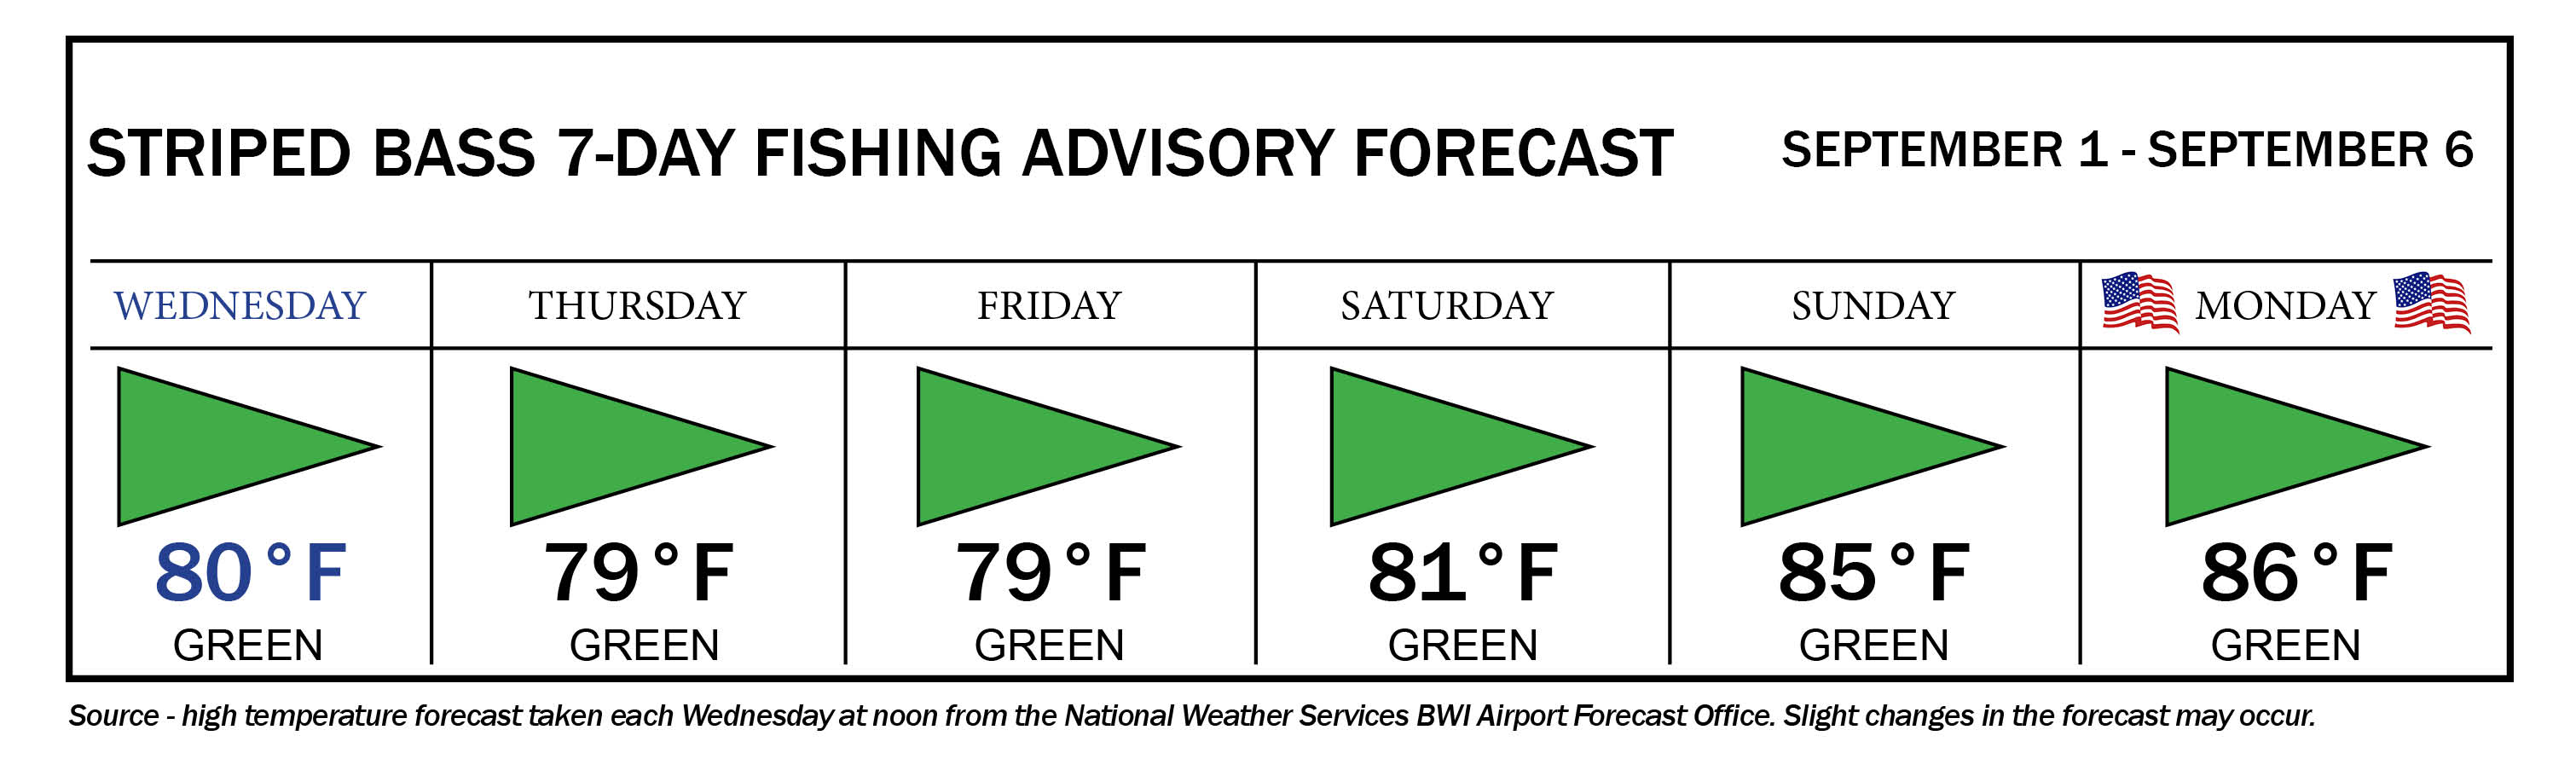 Image of striped bass 7-day fishing advisory forecast, with green flags Wednesday through Saturday, yellow flags Sunday and Monday, and a green flag Tuesday